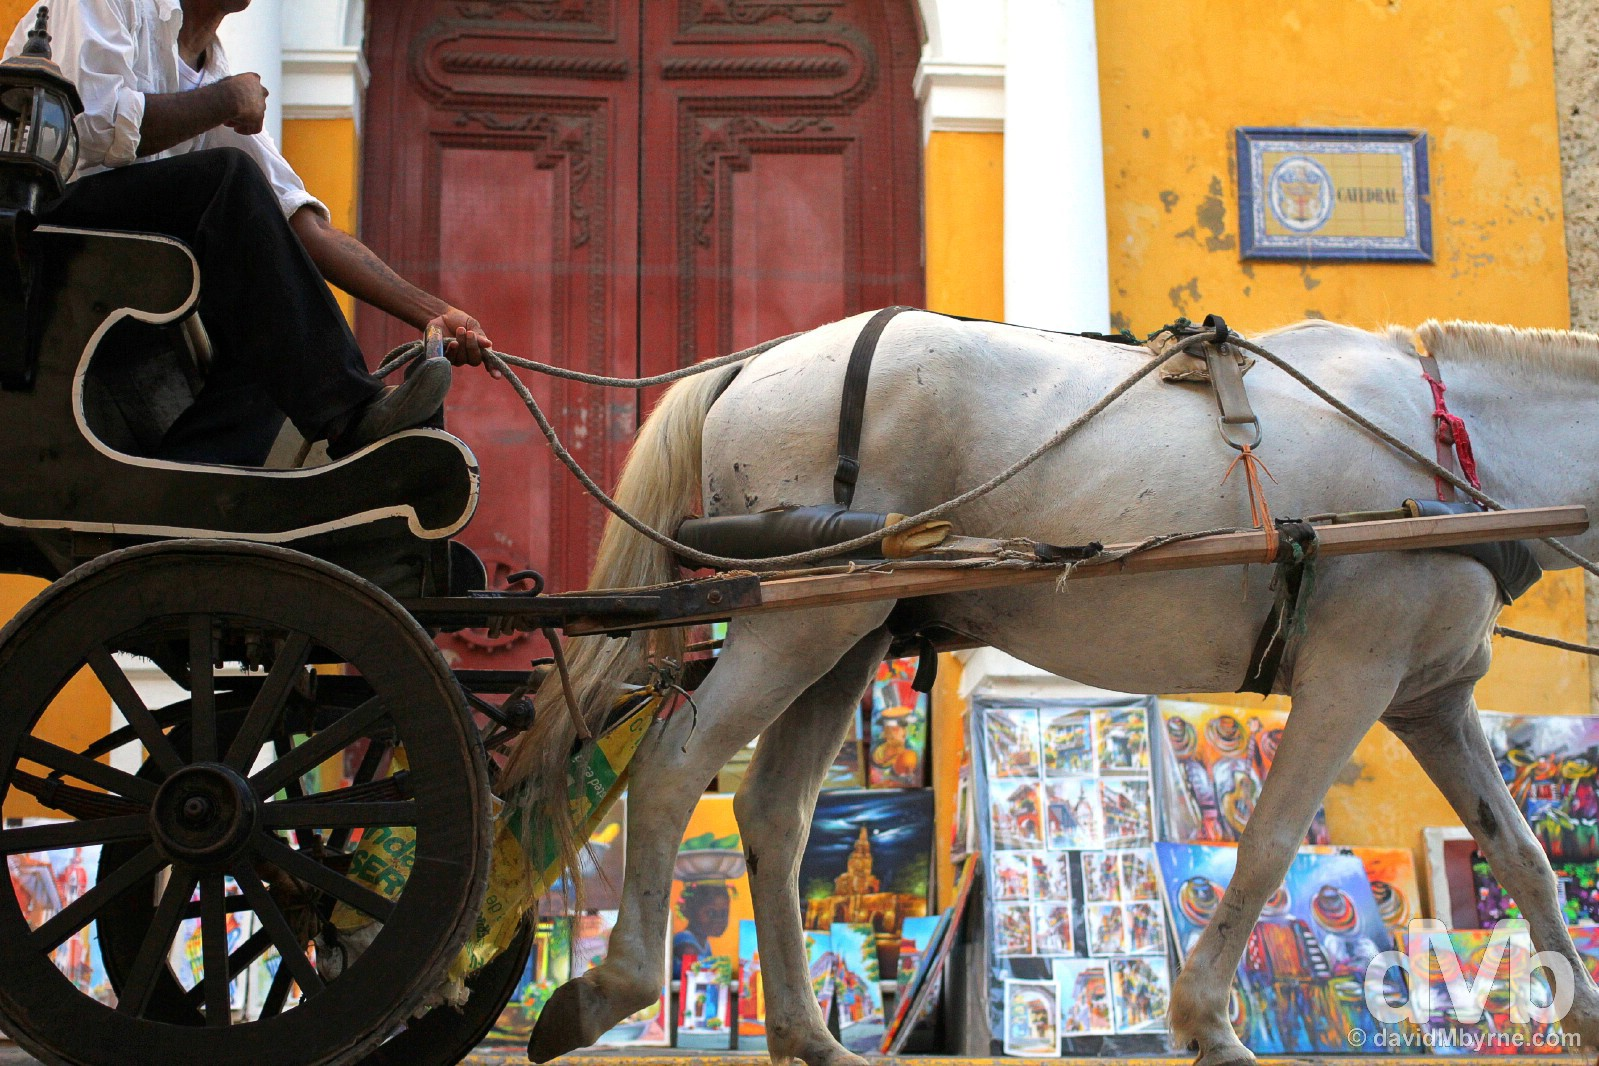 Outside Catedral in Old Town Cartagena, Colombia. June 24, 2015.